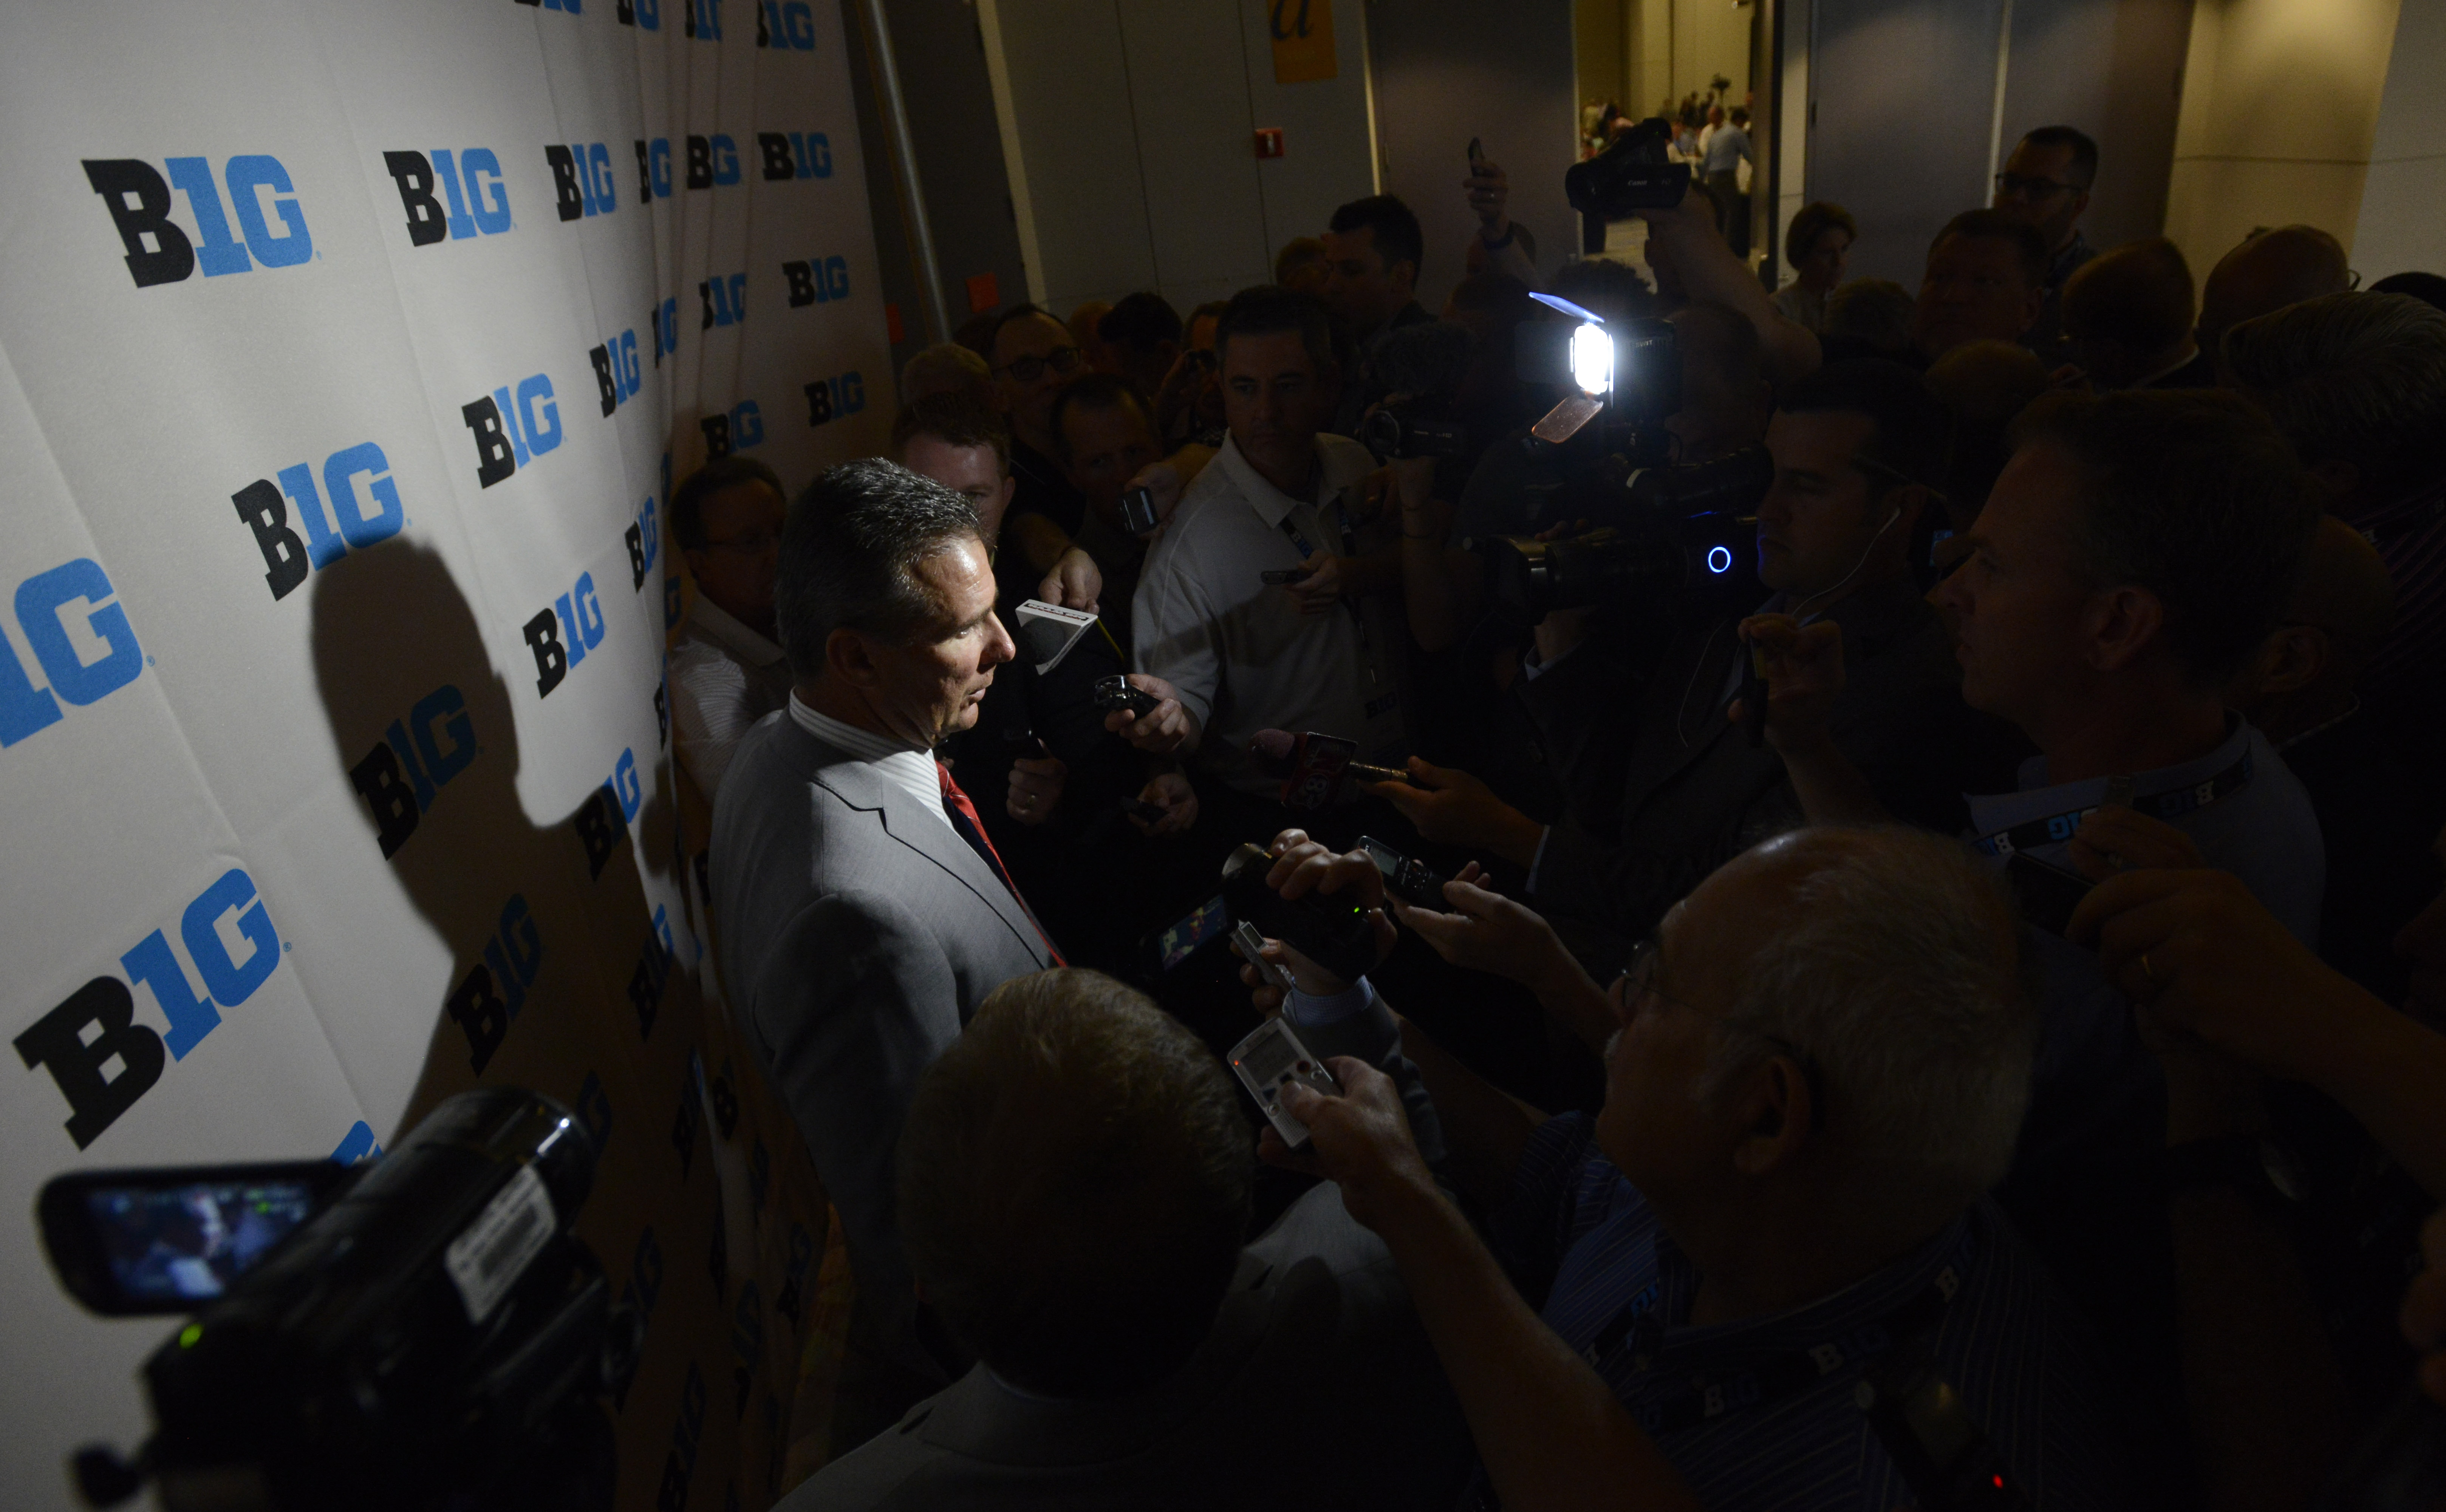 Ohio State head coach Urban Meyer speaks to the media during the Big Ten Football Media Day Thursday, July 30, 2015 in Chicago. (AP Photo/Paul Beaty)